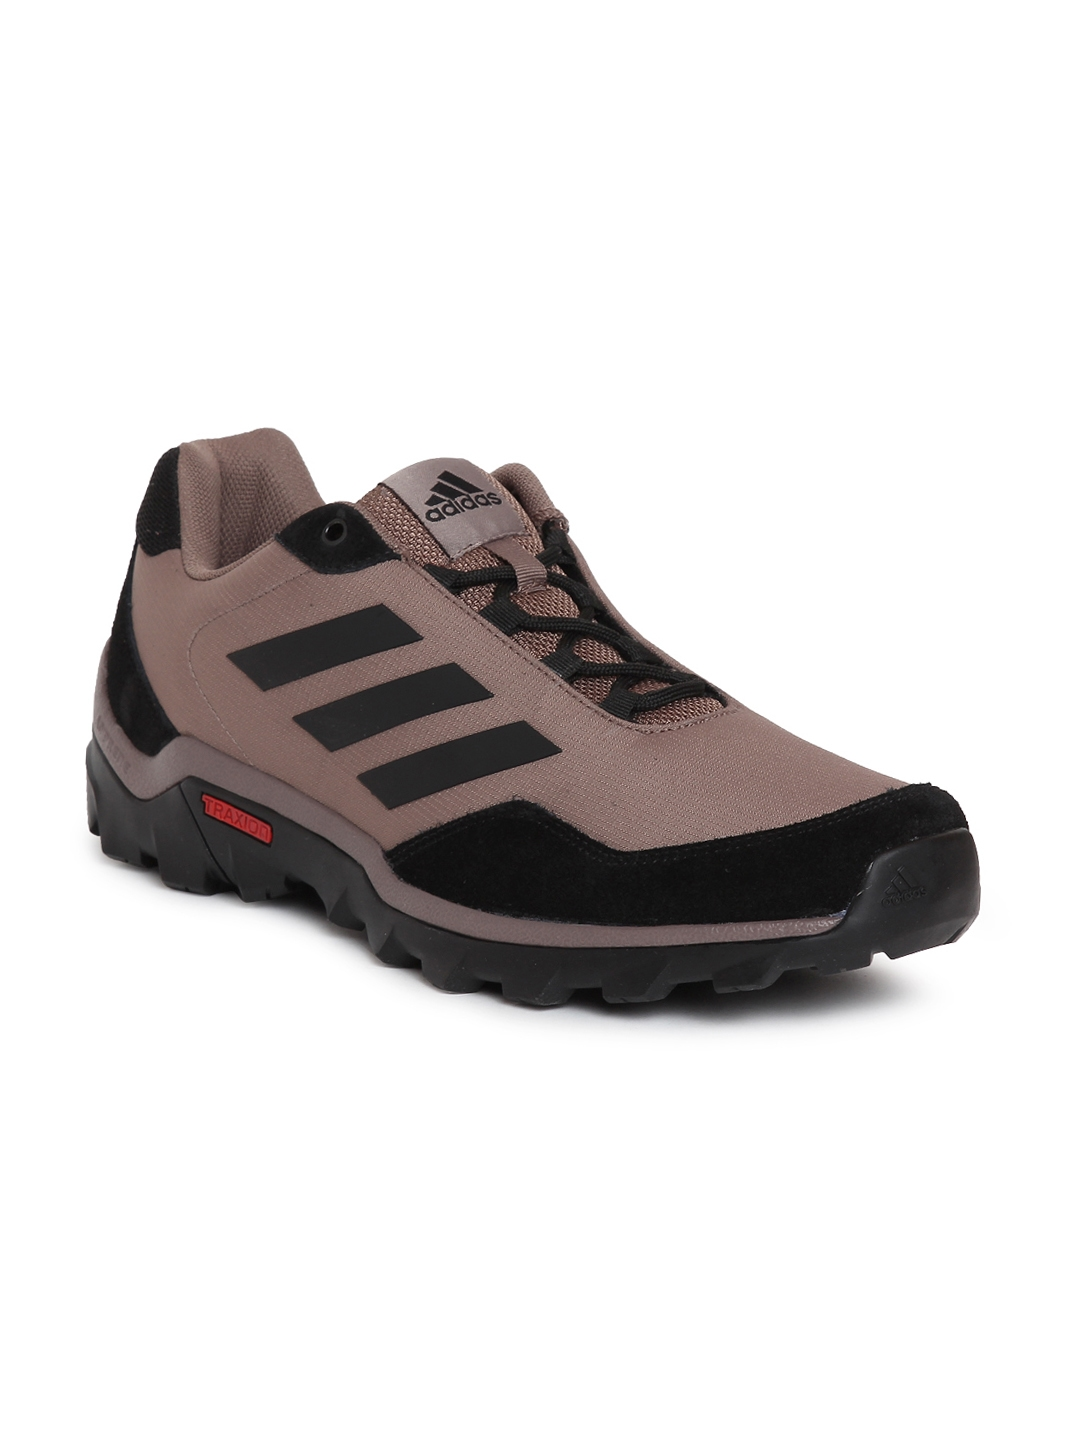 Buy ADIDAS Men Brown Cape Rock IND Outdoor Shoes - Sports Shoes for ... 844f6db79